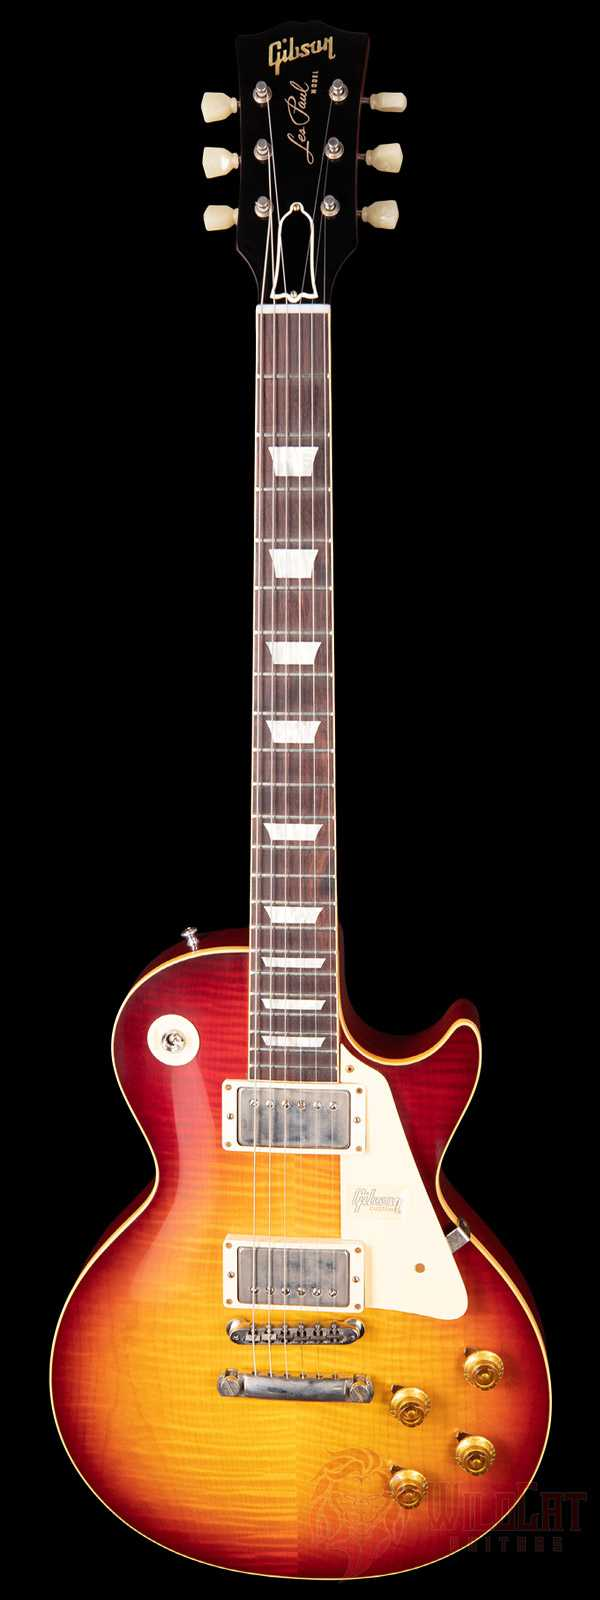 Gibson Custom Shop VOS 1959 Les Paul Standard Vintage Cherry Sunburst